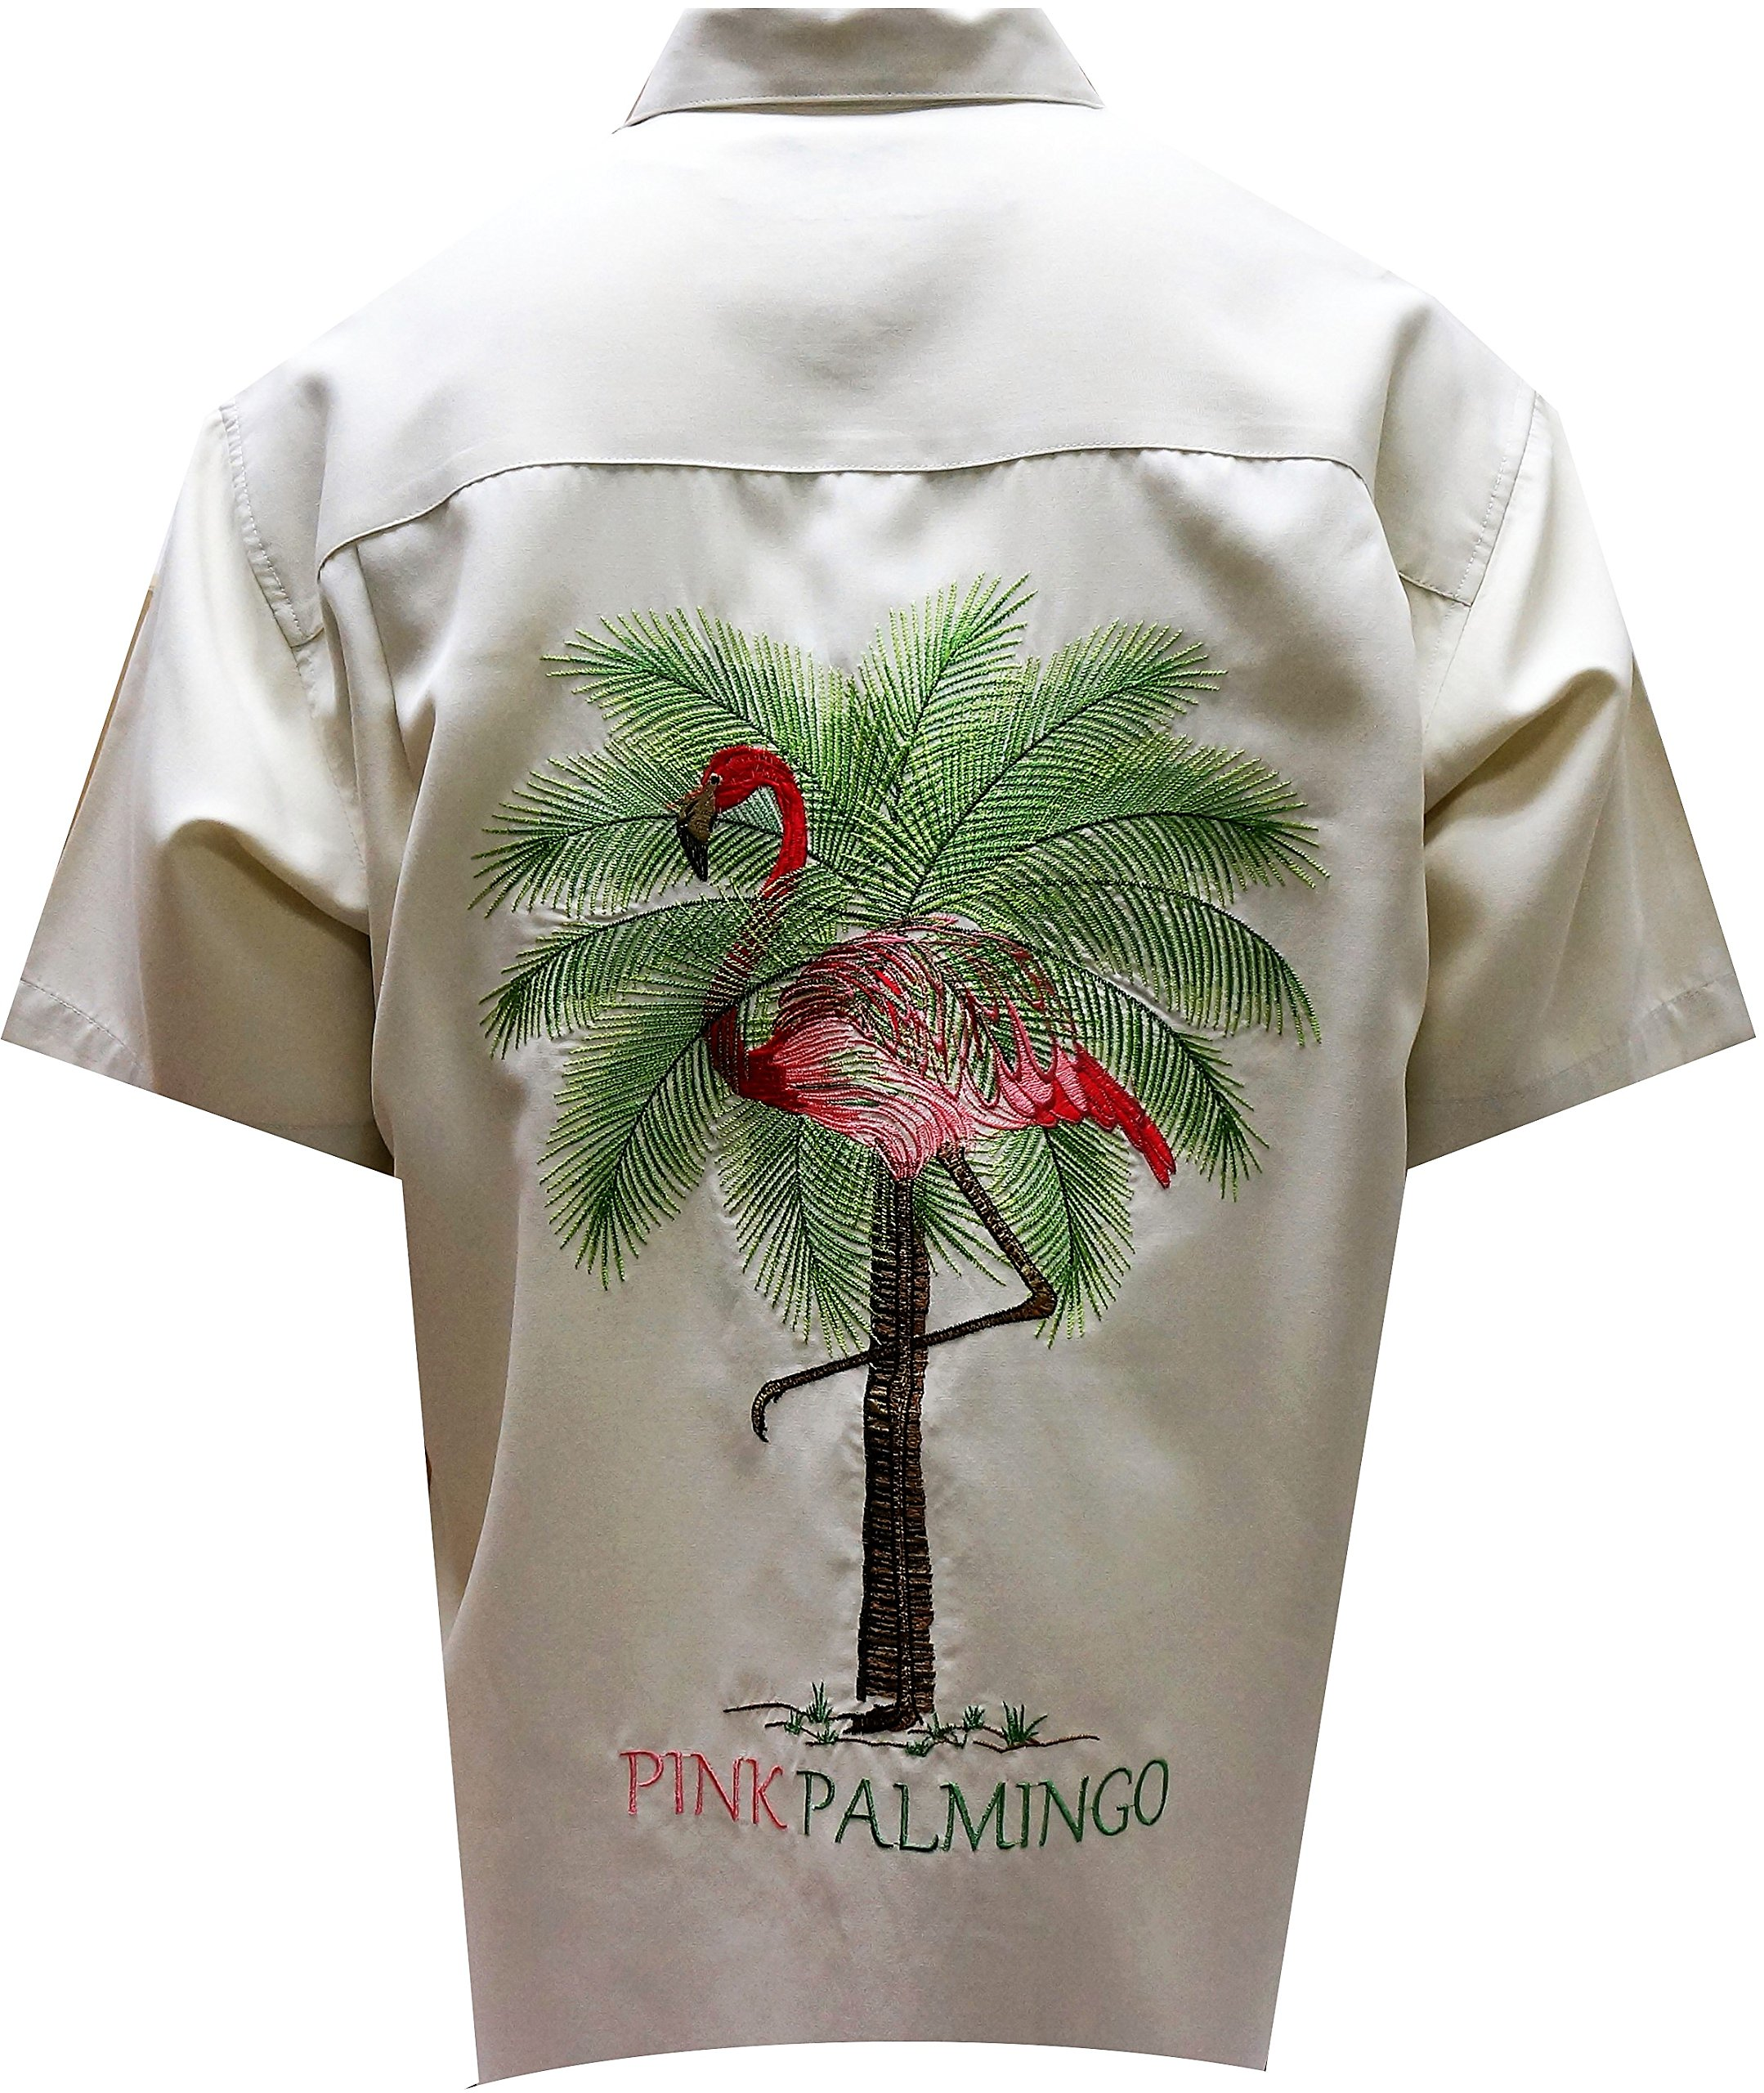 Bamboo Cay - Men's Pink Palmingo, Embroidered Tropical Style Shirt (X-Large, Cream) by Bamboo Cay (Image #2)